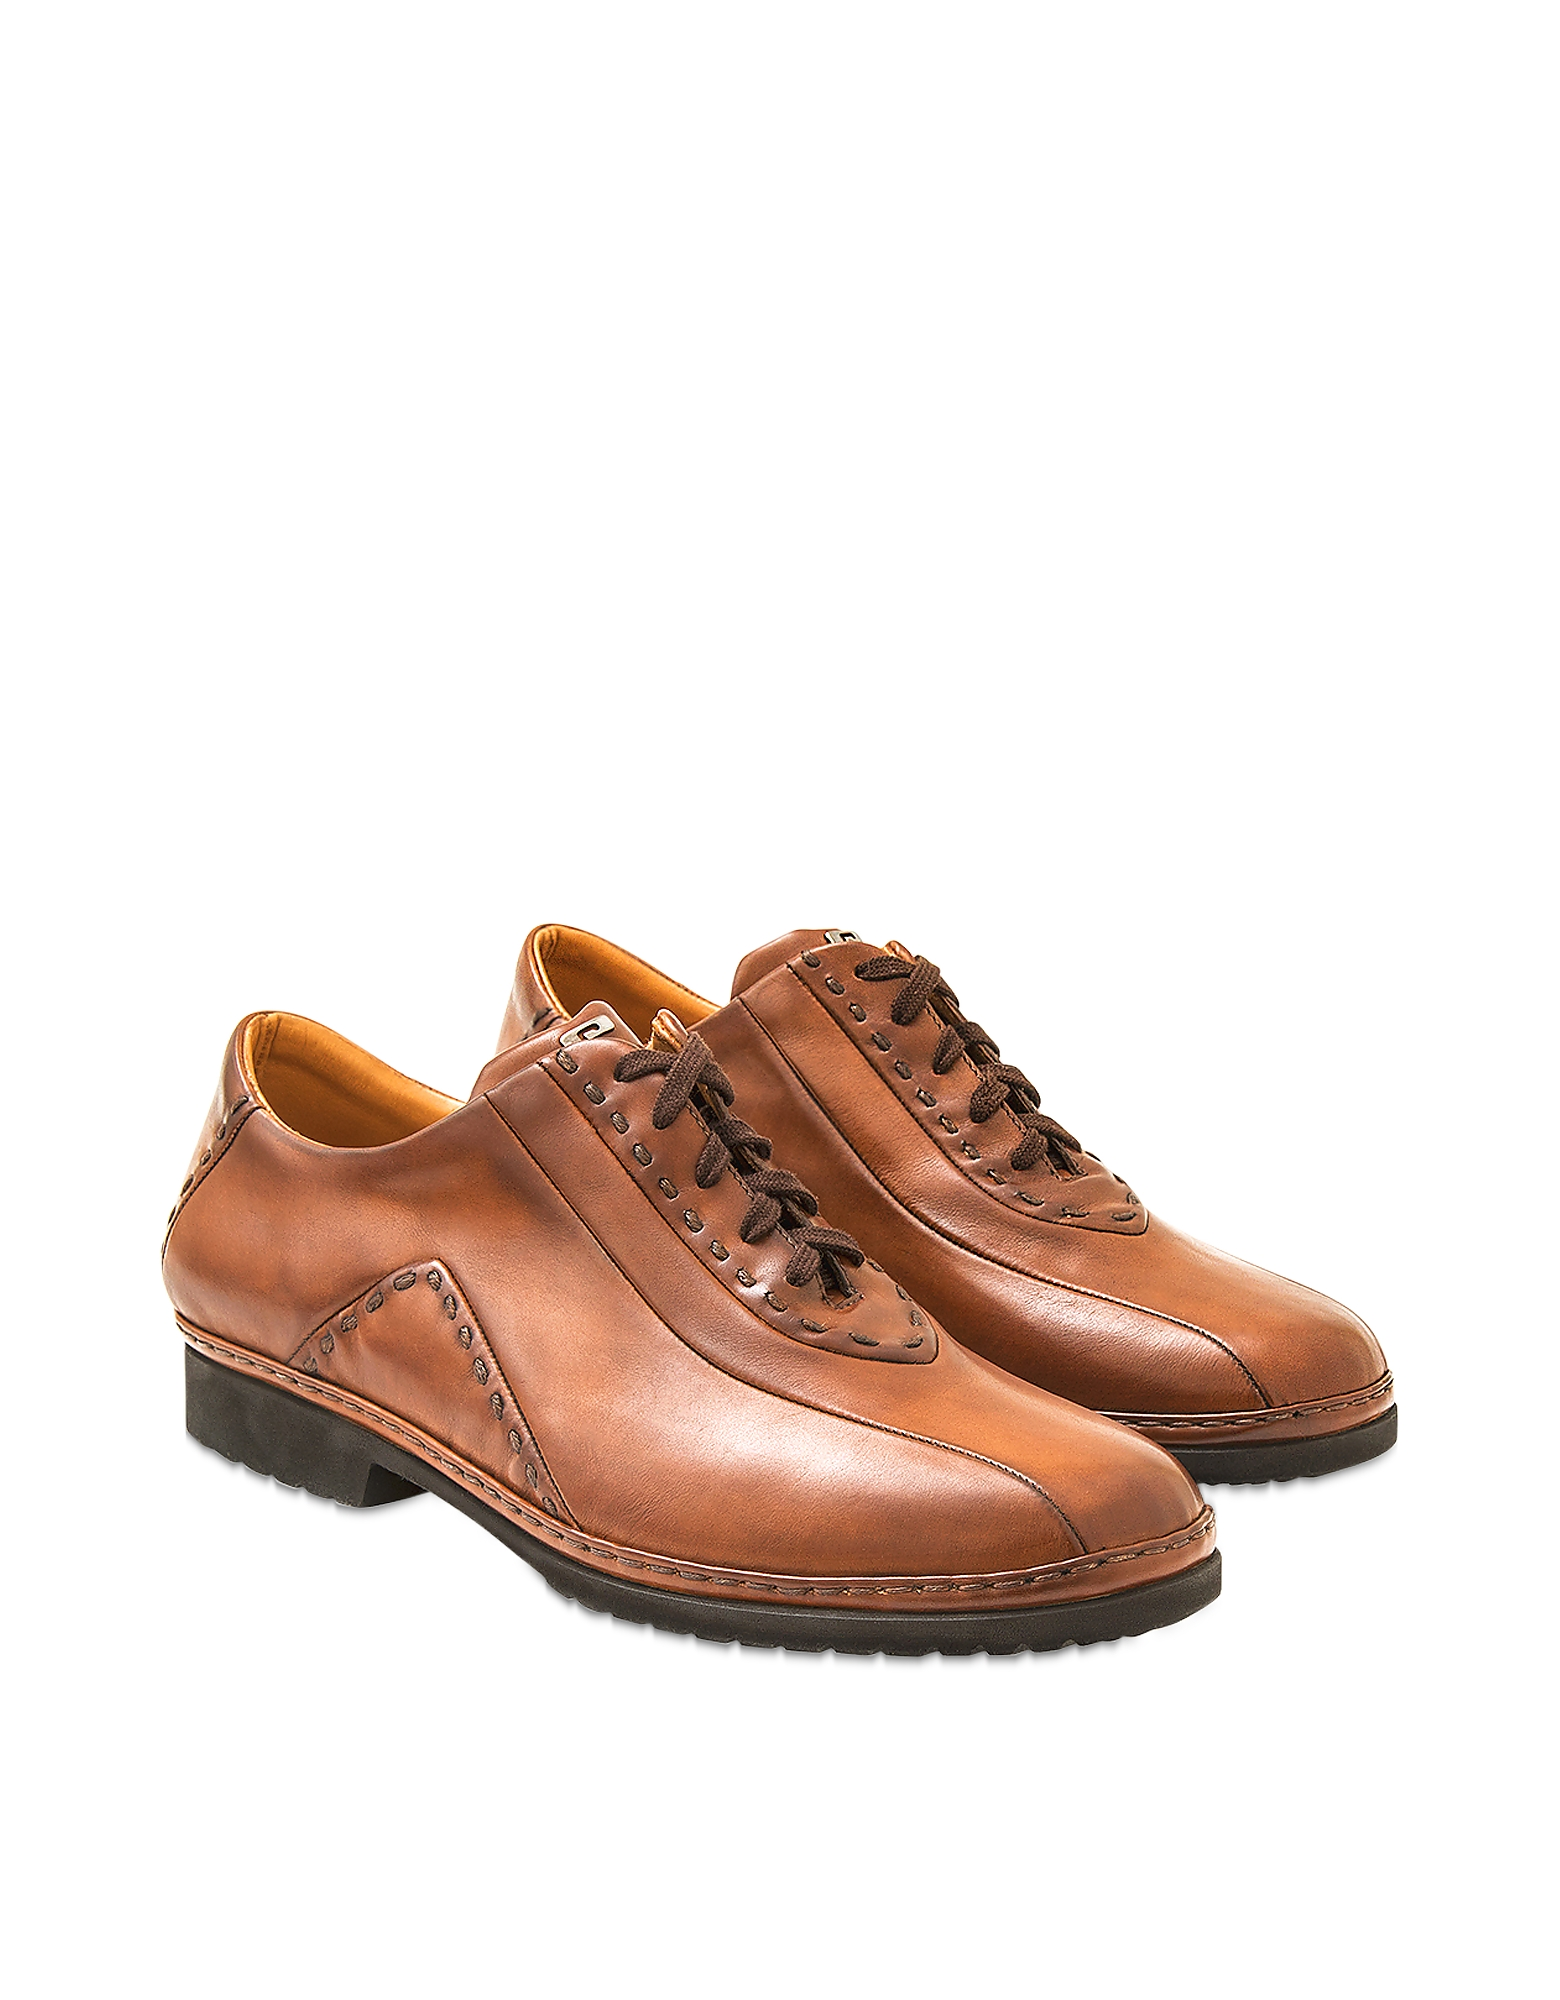 Pakerson Designer Shoes, Tan Italian Hand Made Calf Leather Lace-up Shoes